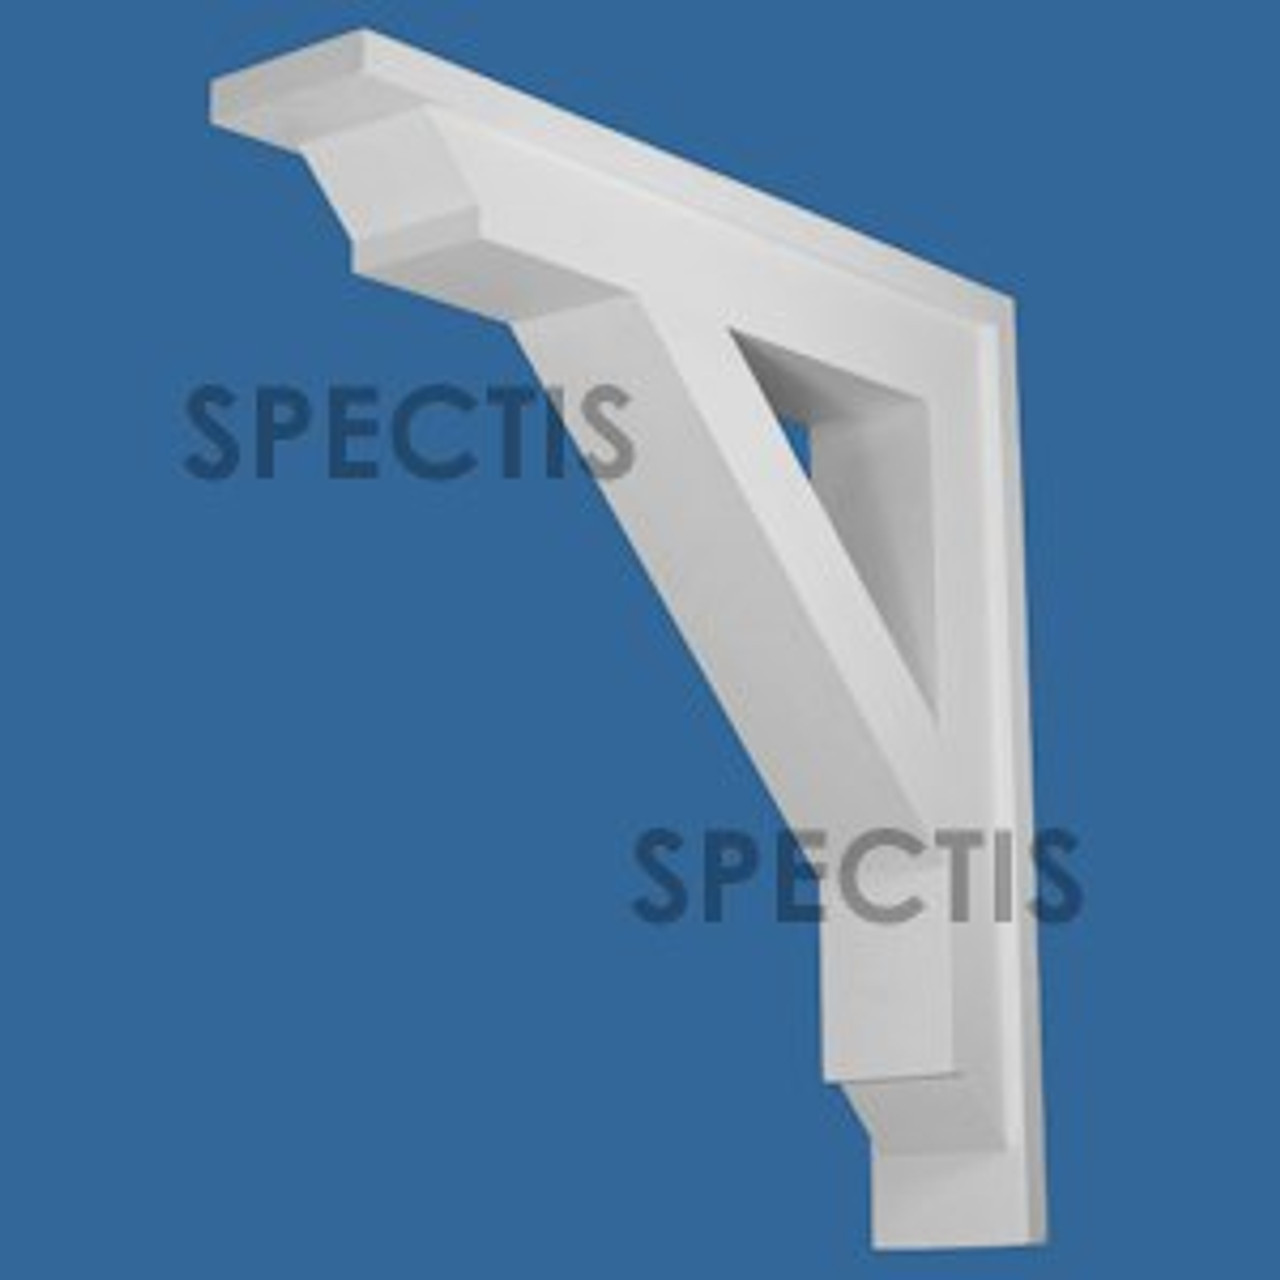 """BL3045 Spectis Eave Block or Bracket 6""""W x 40""""H x 40"""" Projection"""